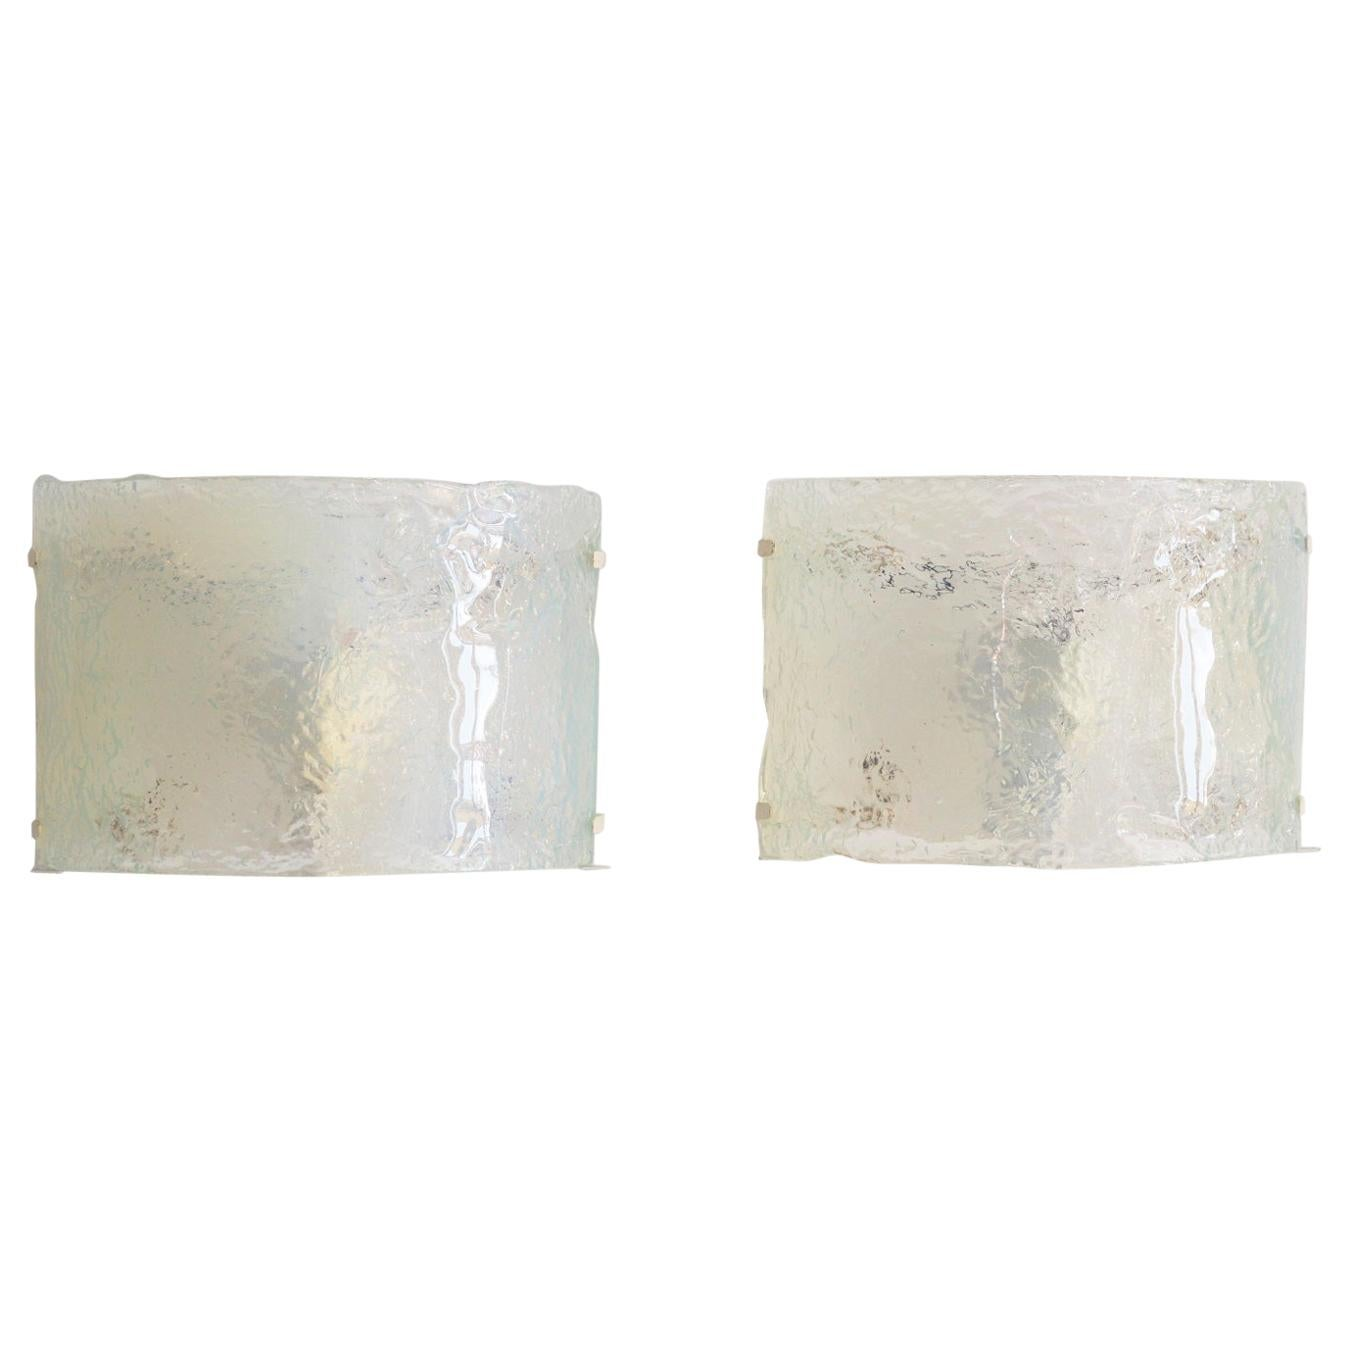 Italian Midcentury Wall Sconces in Opalescent Murano Glass from the 1970s